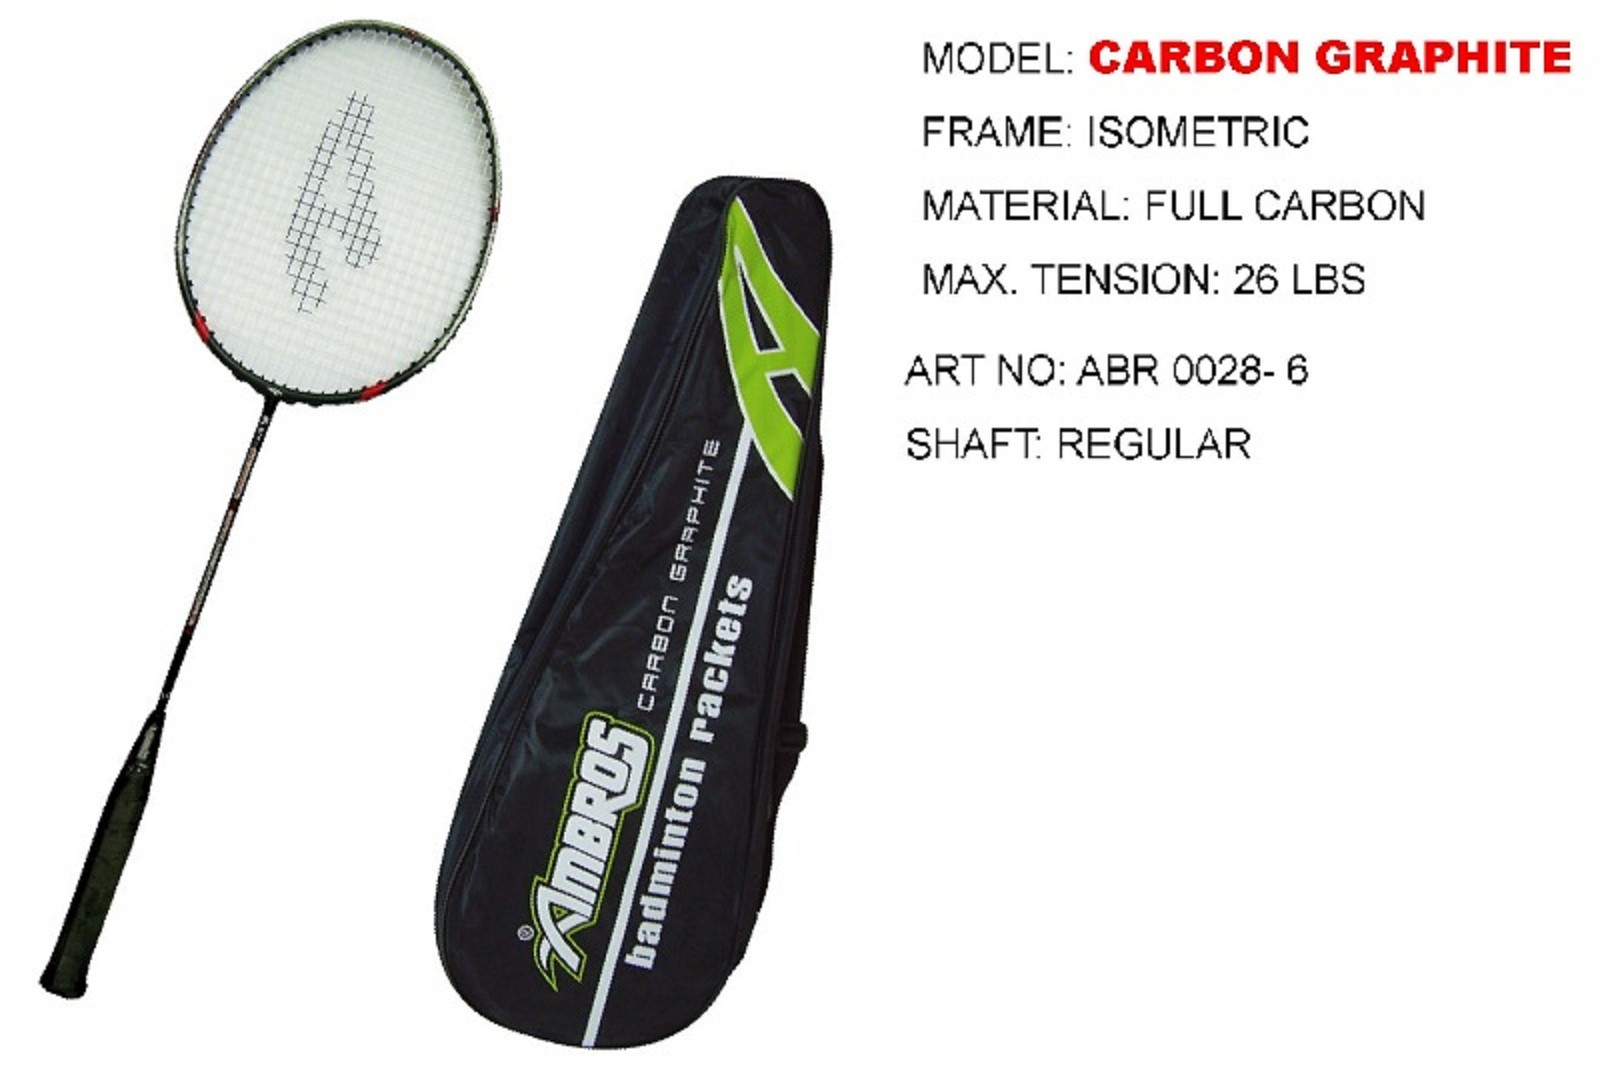 Ambros Badminton Racket Carbon Graphite